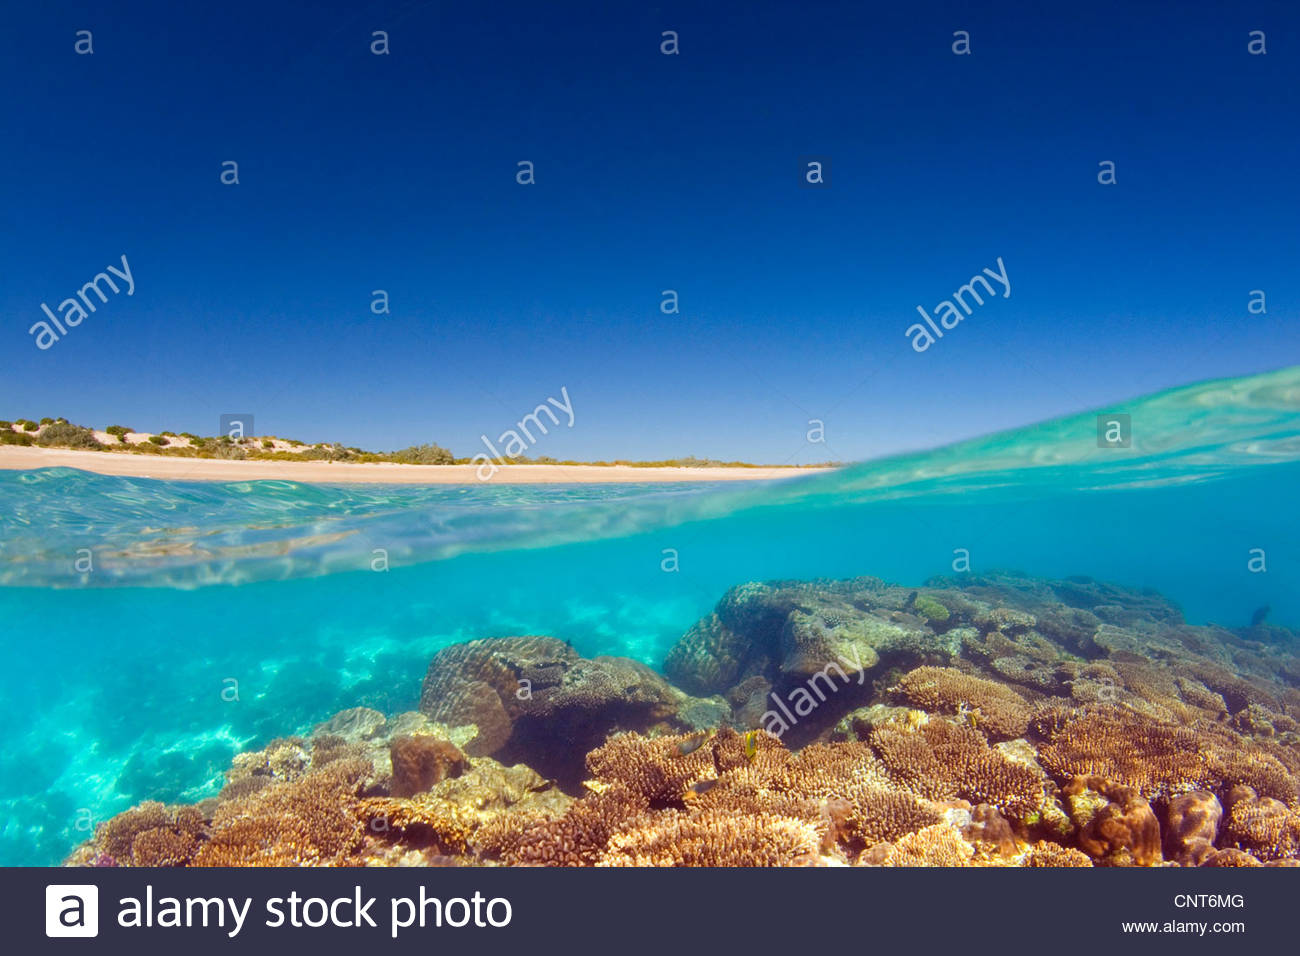 Coral reef and beach - split-level shot of a coral reef and white, sandy beach , Australia, Western Australia, Ningaloo - Stock Image